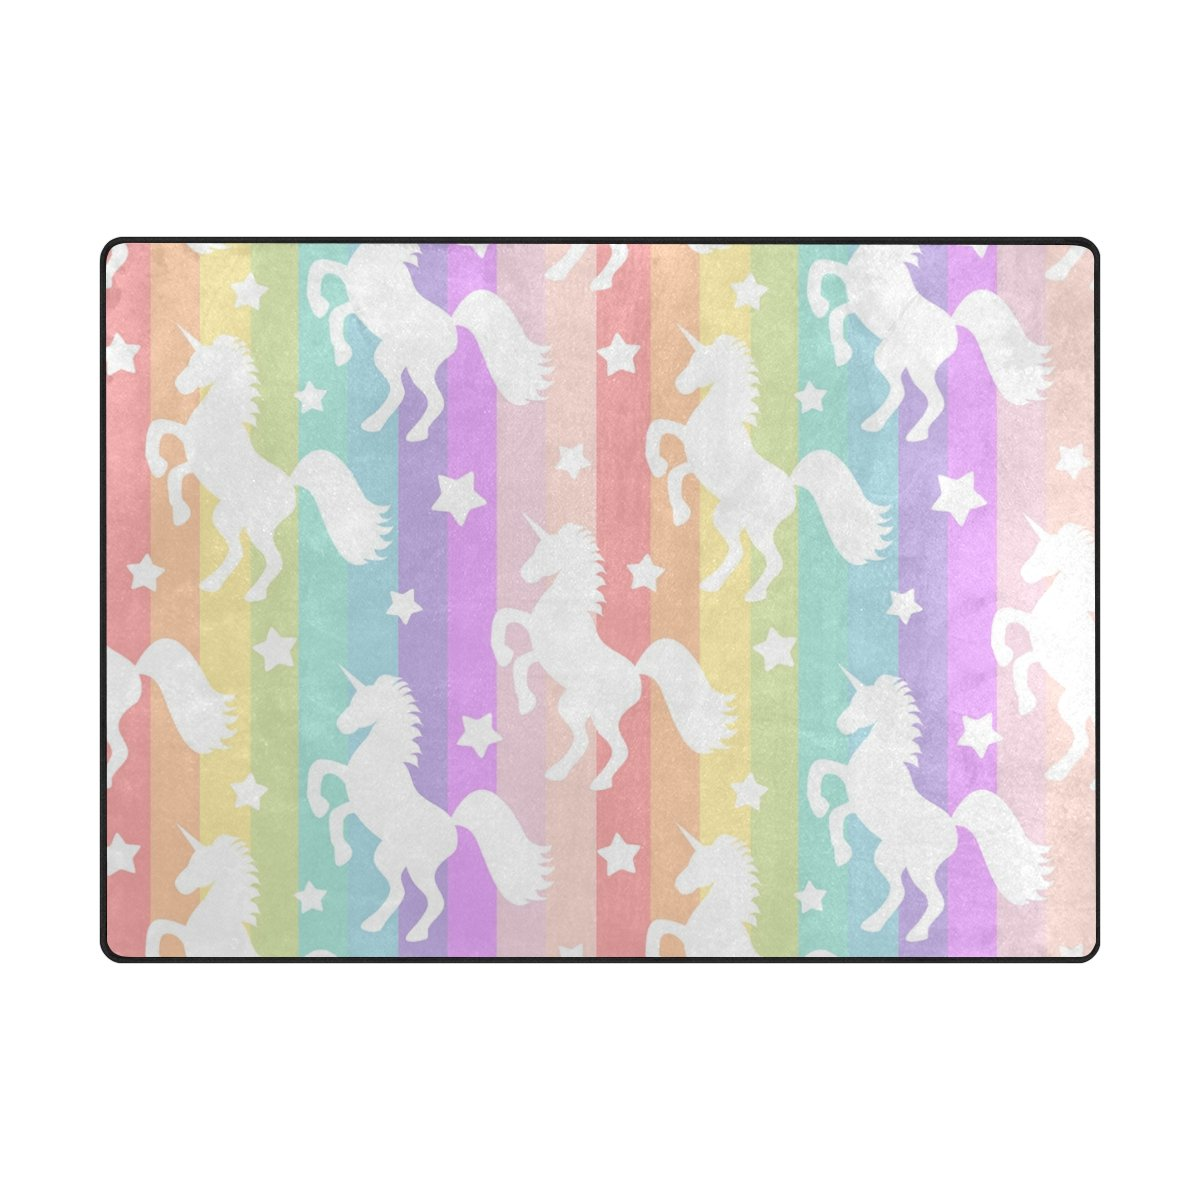 YZGO White Unicorns Stars on Rainbow Colorful Rug, Kids Children Area Rugs Non-Slip Floor Mat Resting Area Doormats